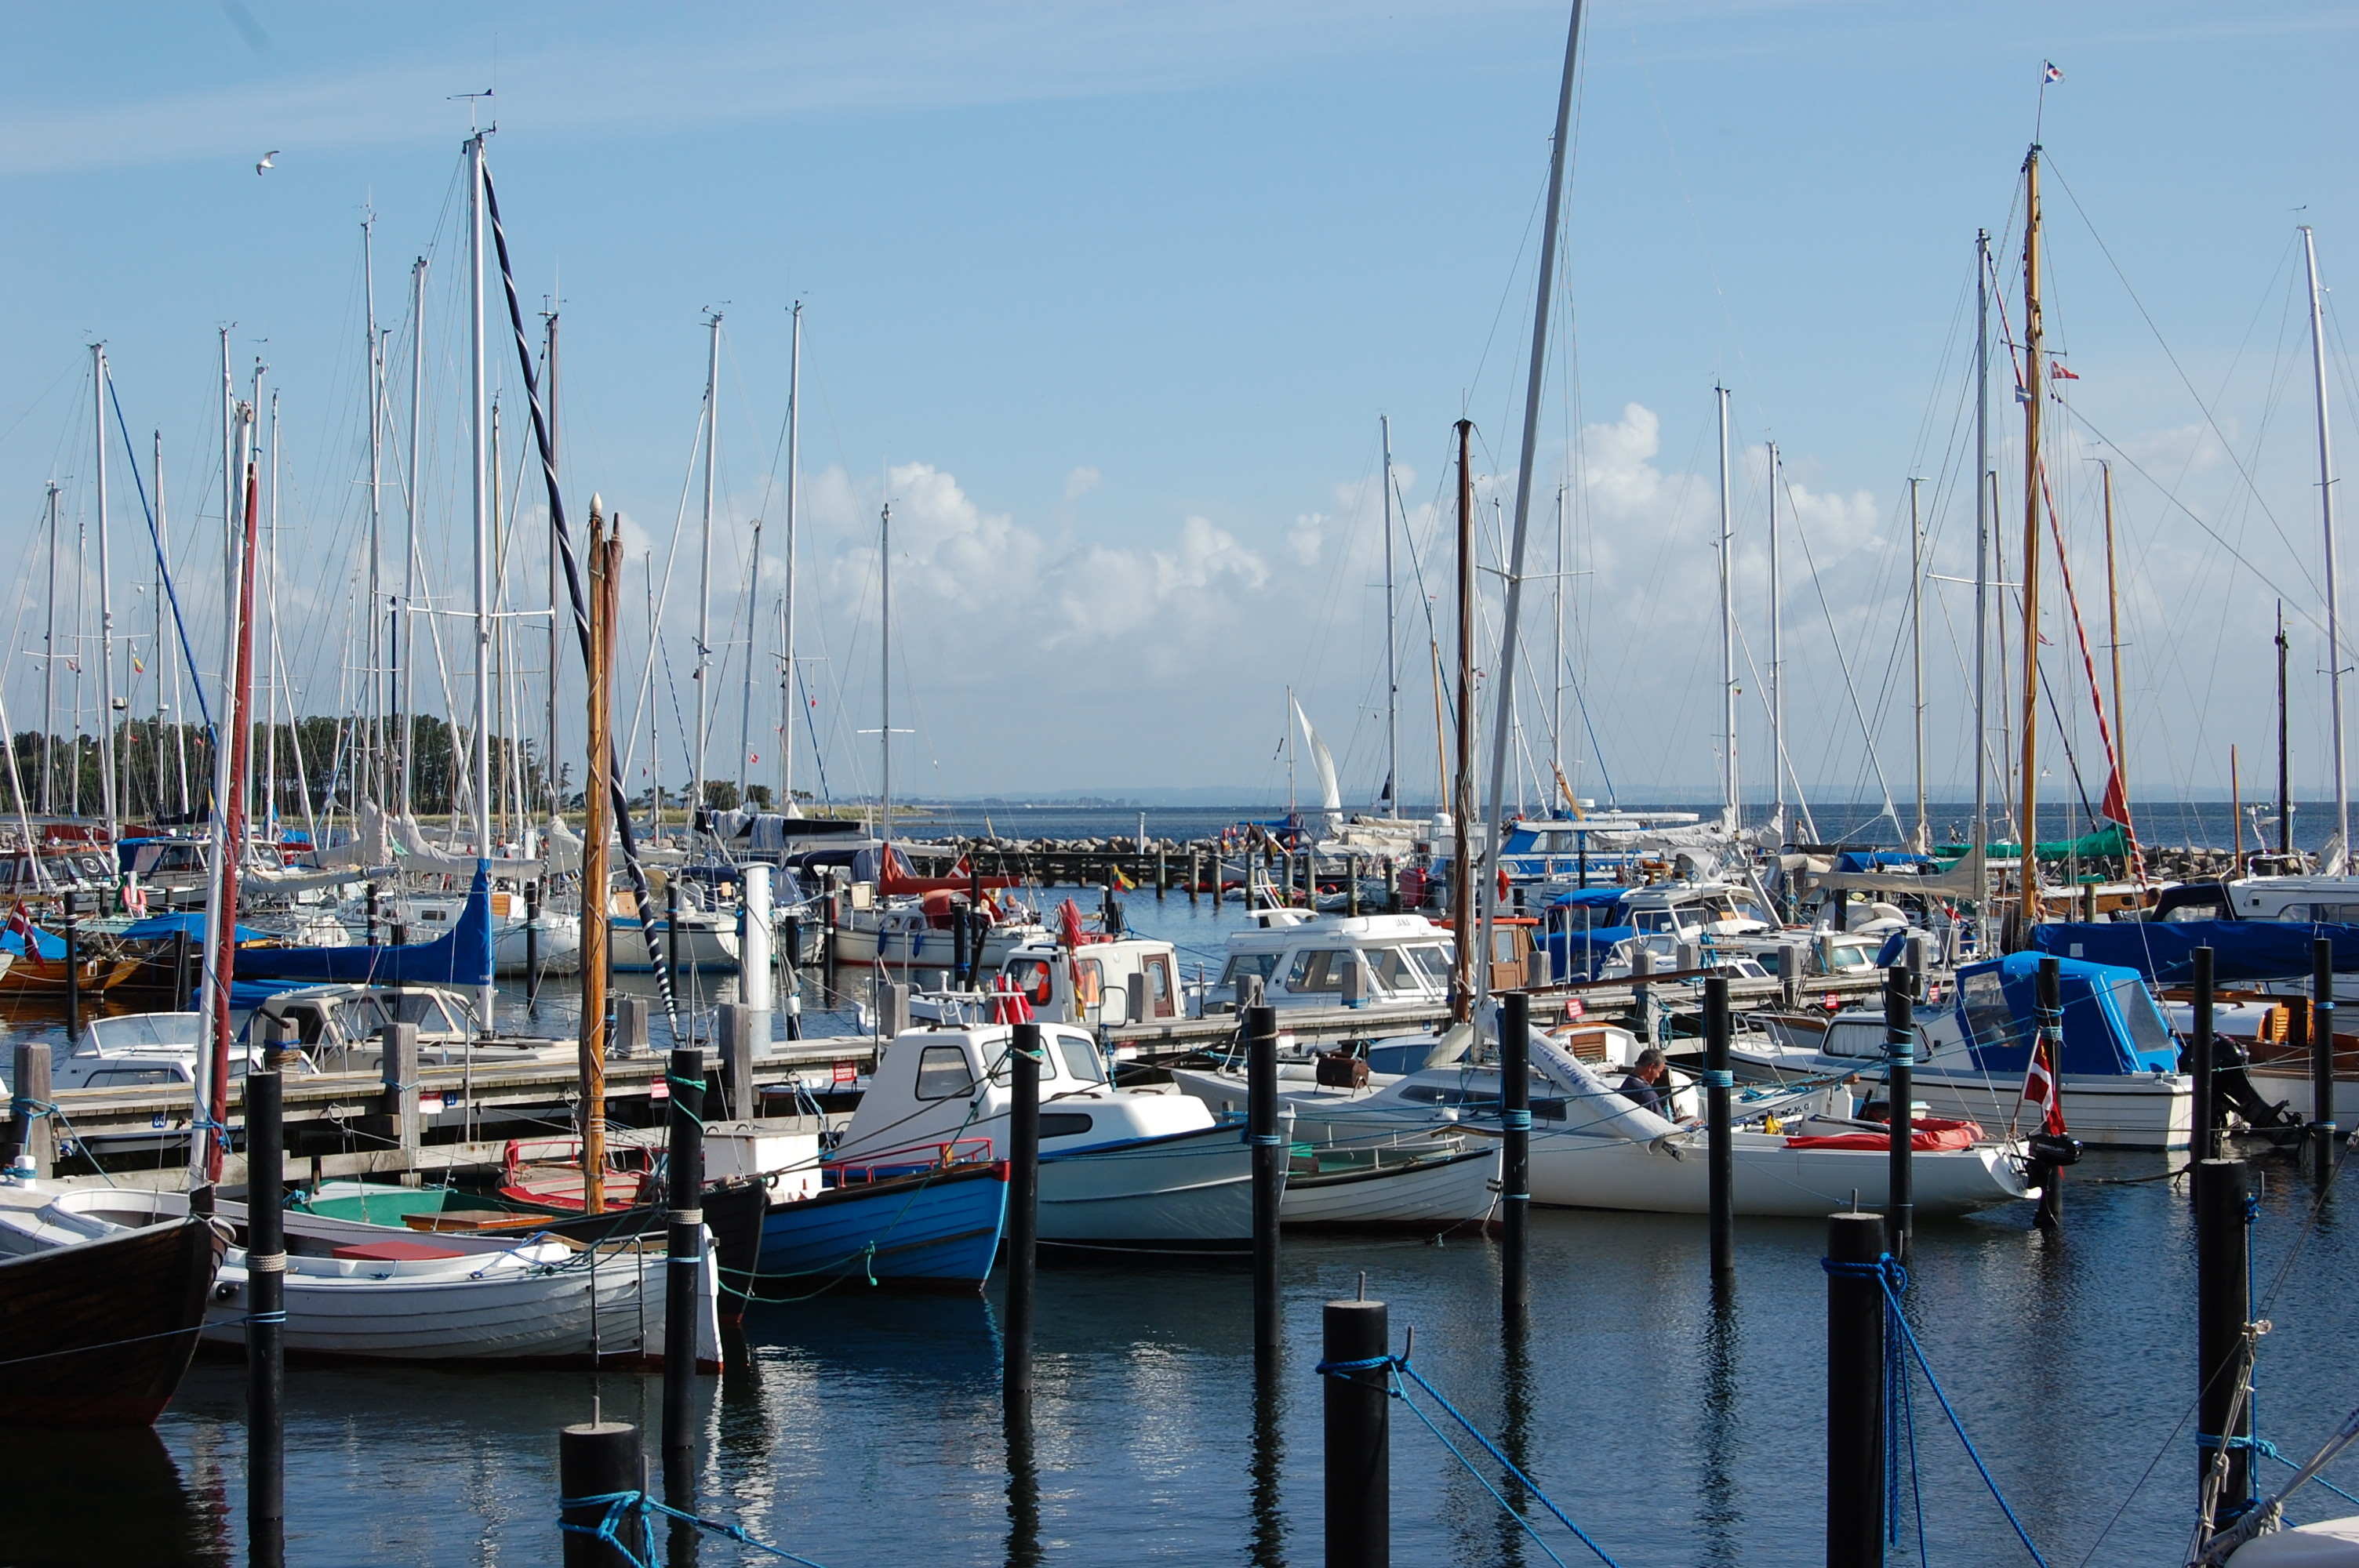 Sailboats docked 2